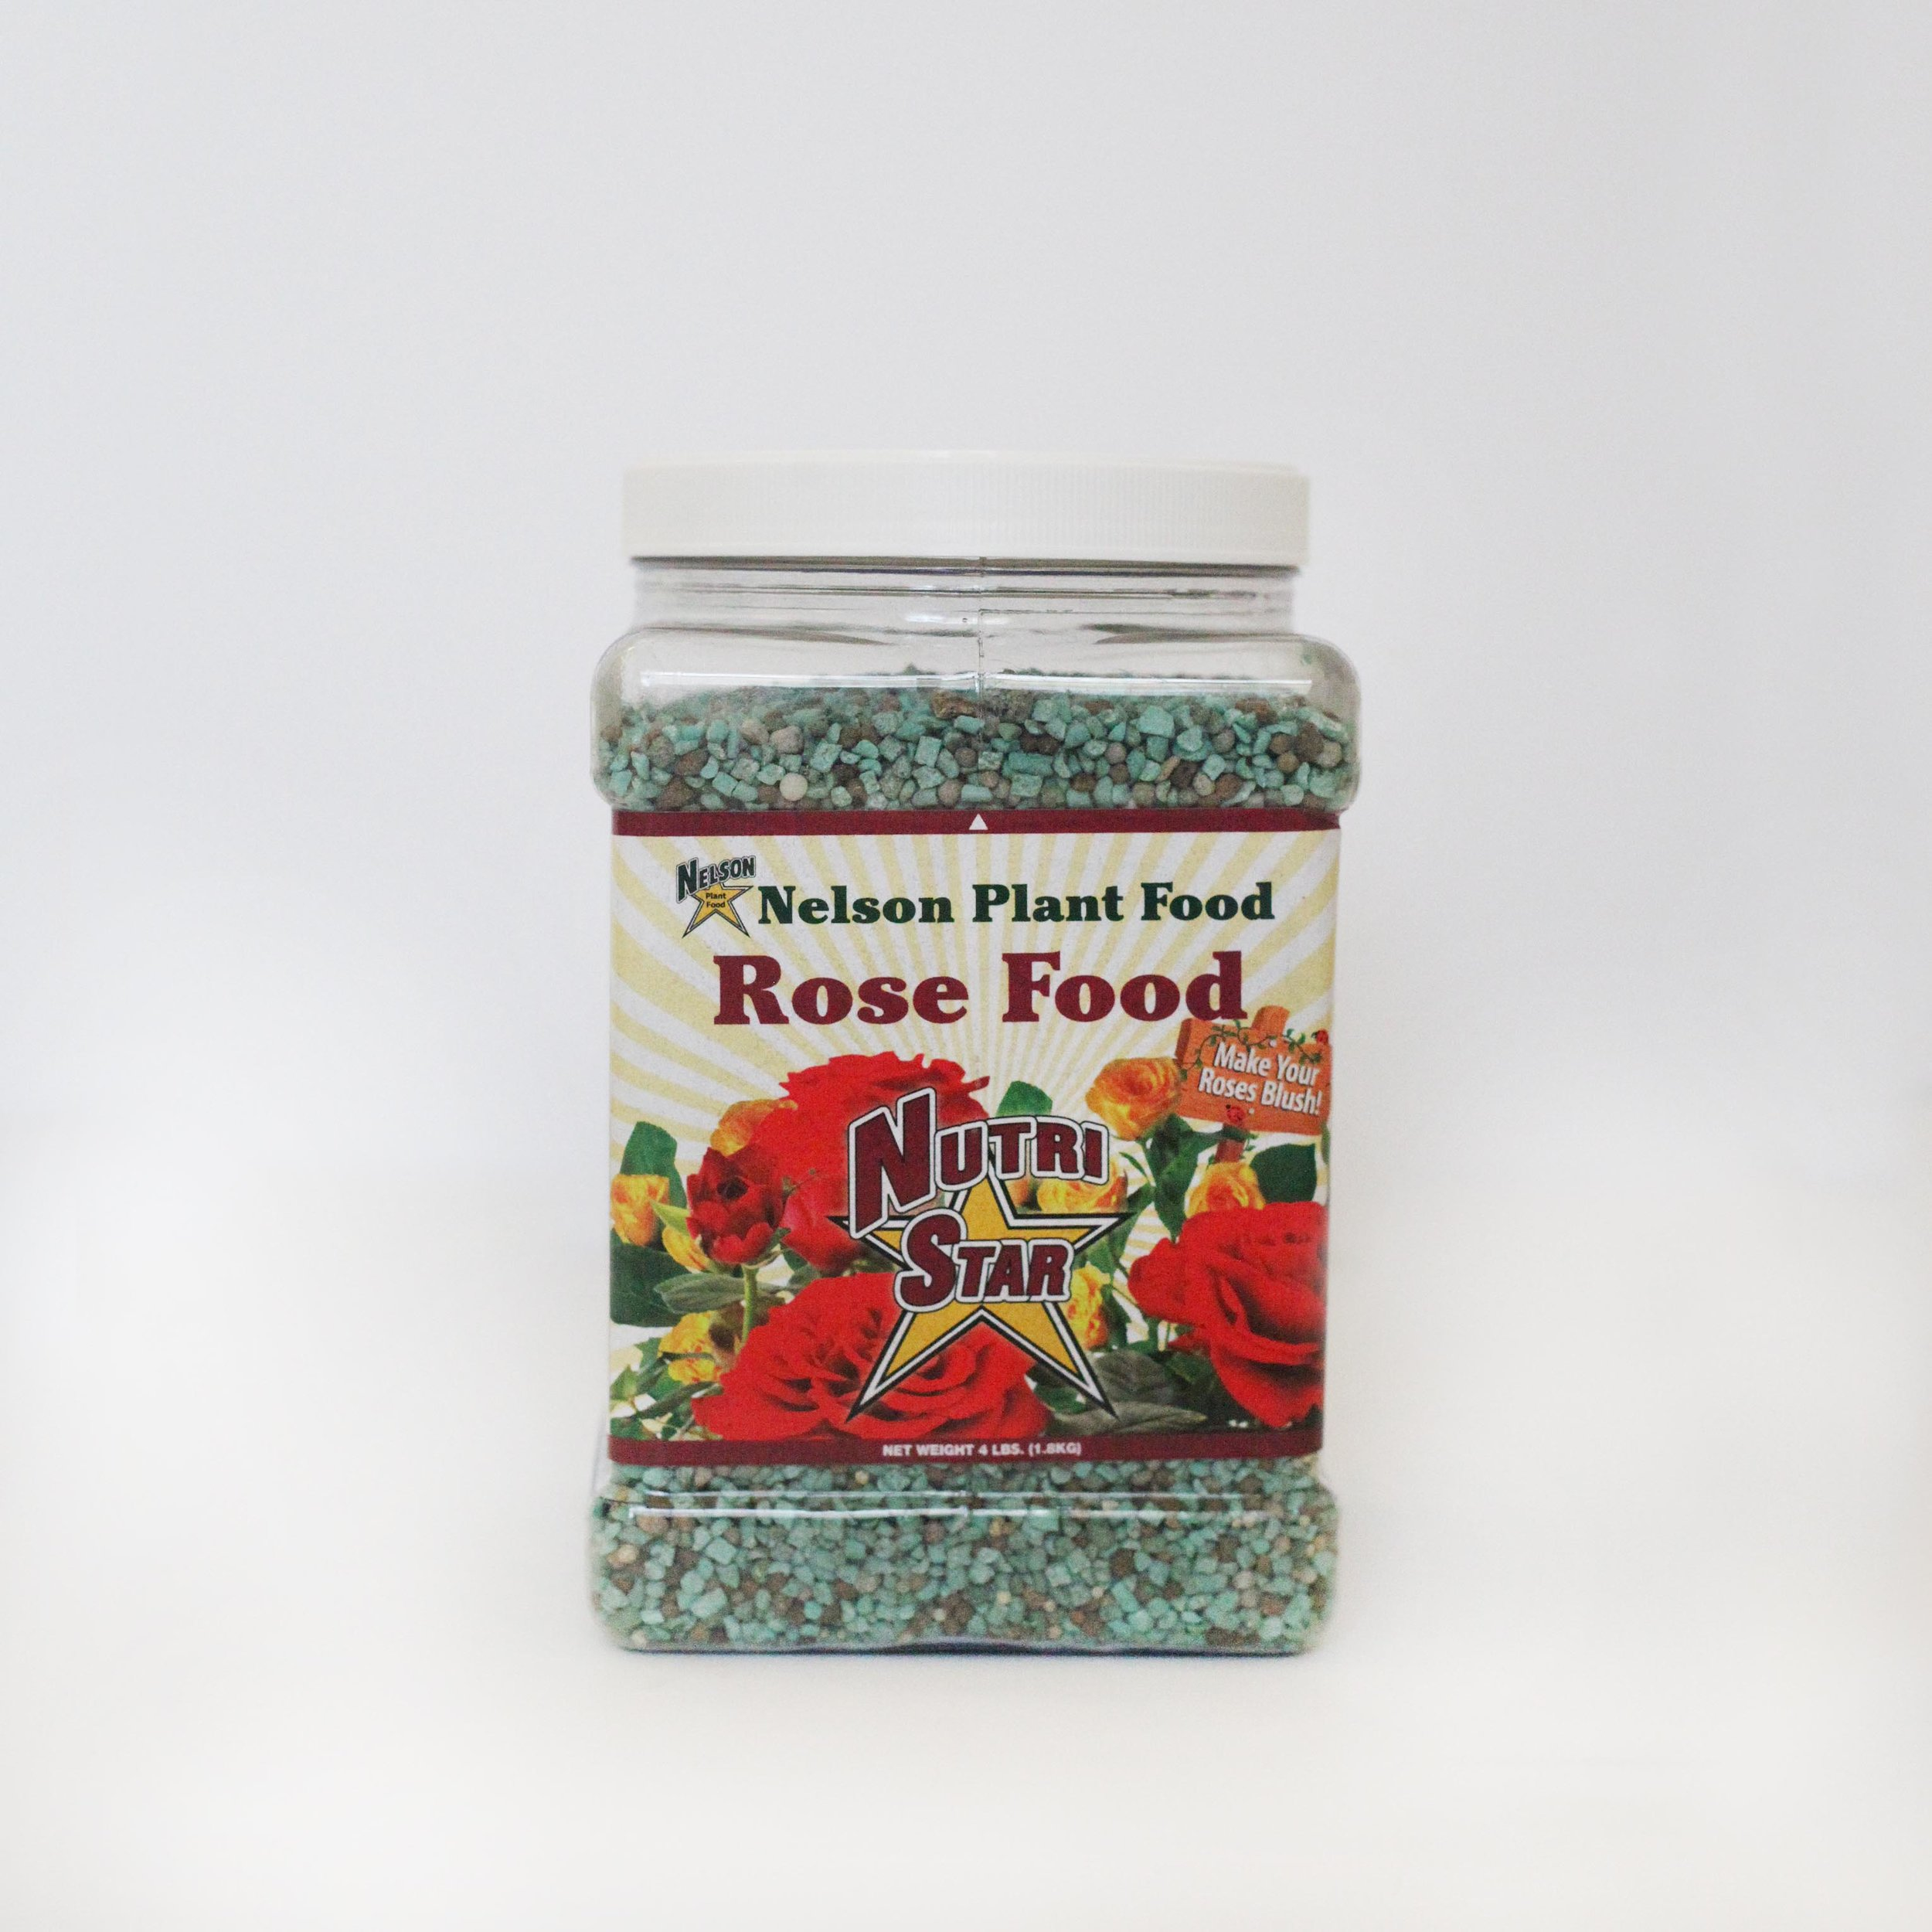 Nelson Plant Food Rose Food